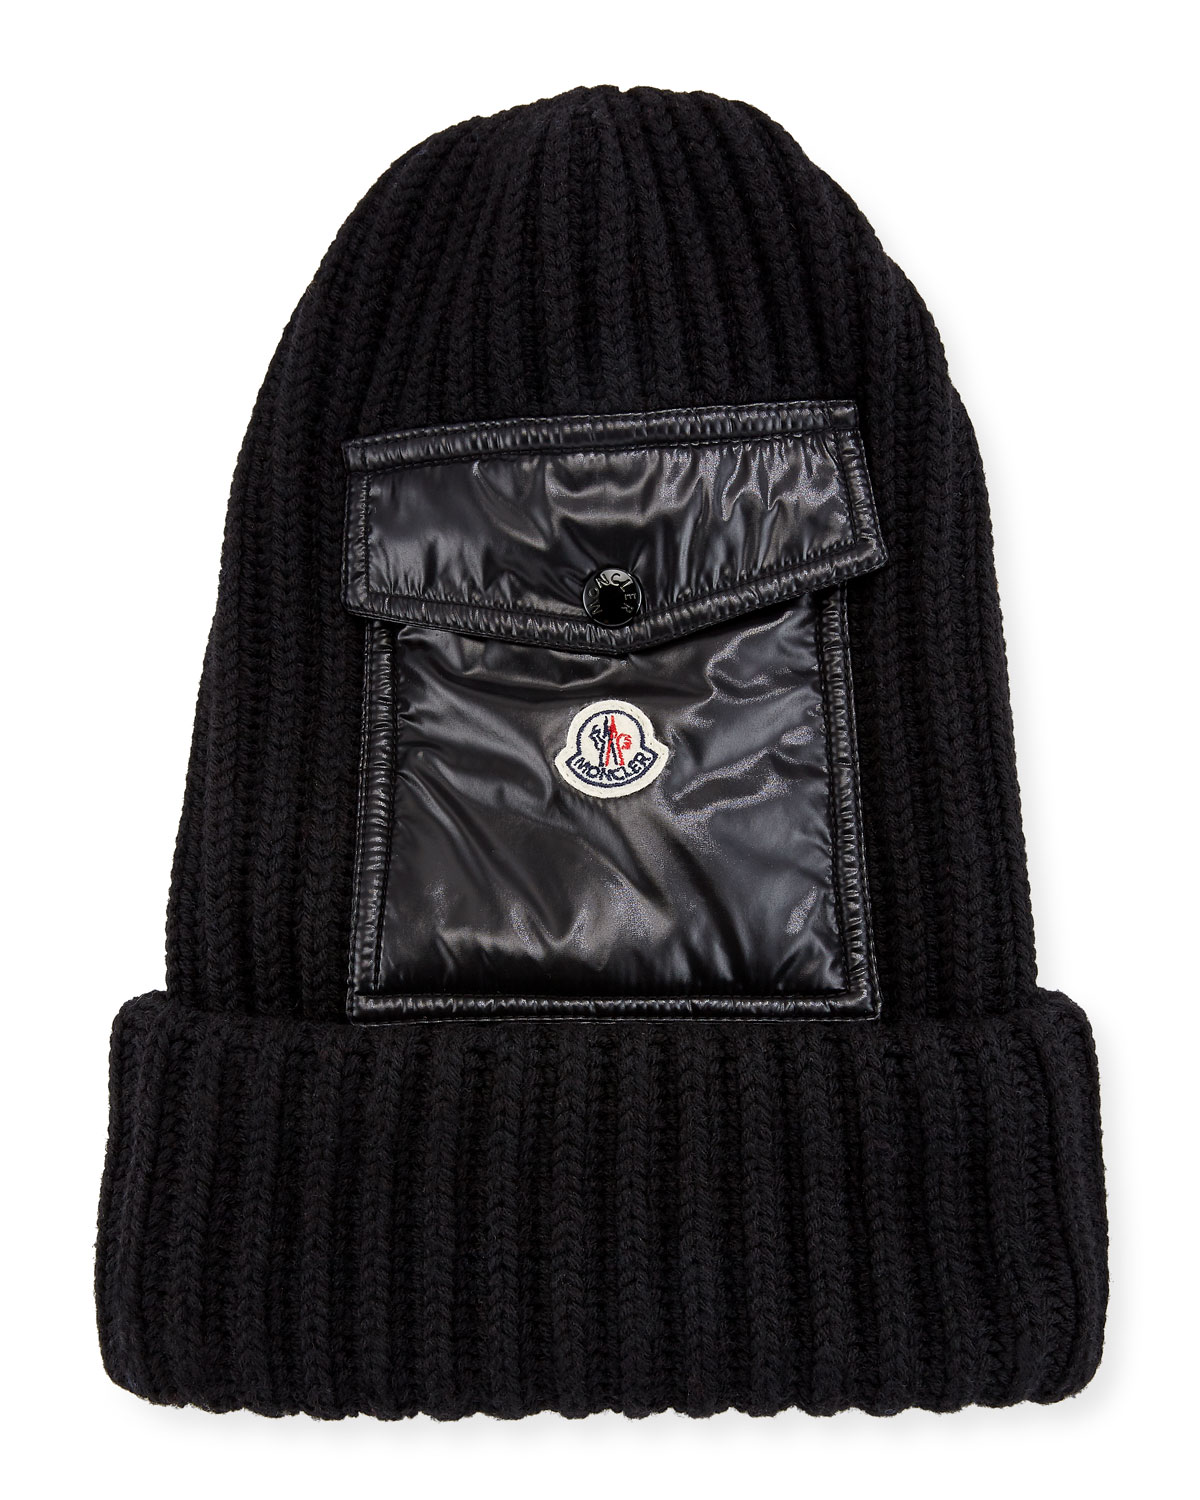 019efd04456 Moncler Men s Ribbed Beanie Hat w  Flap Pocket